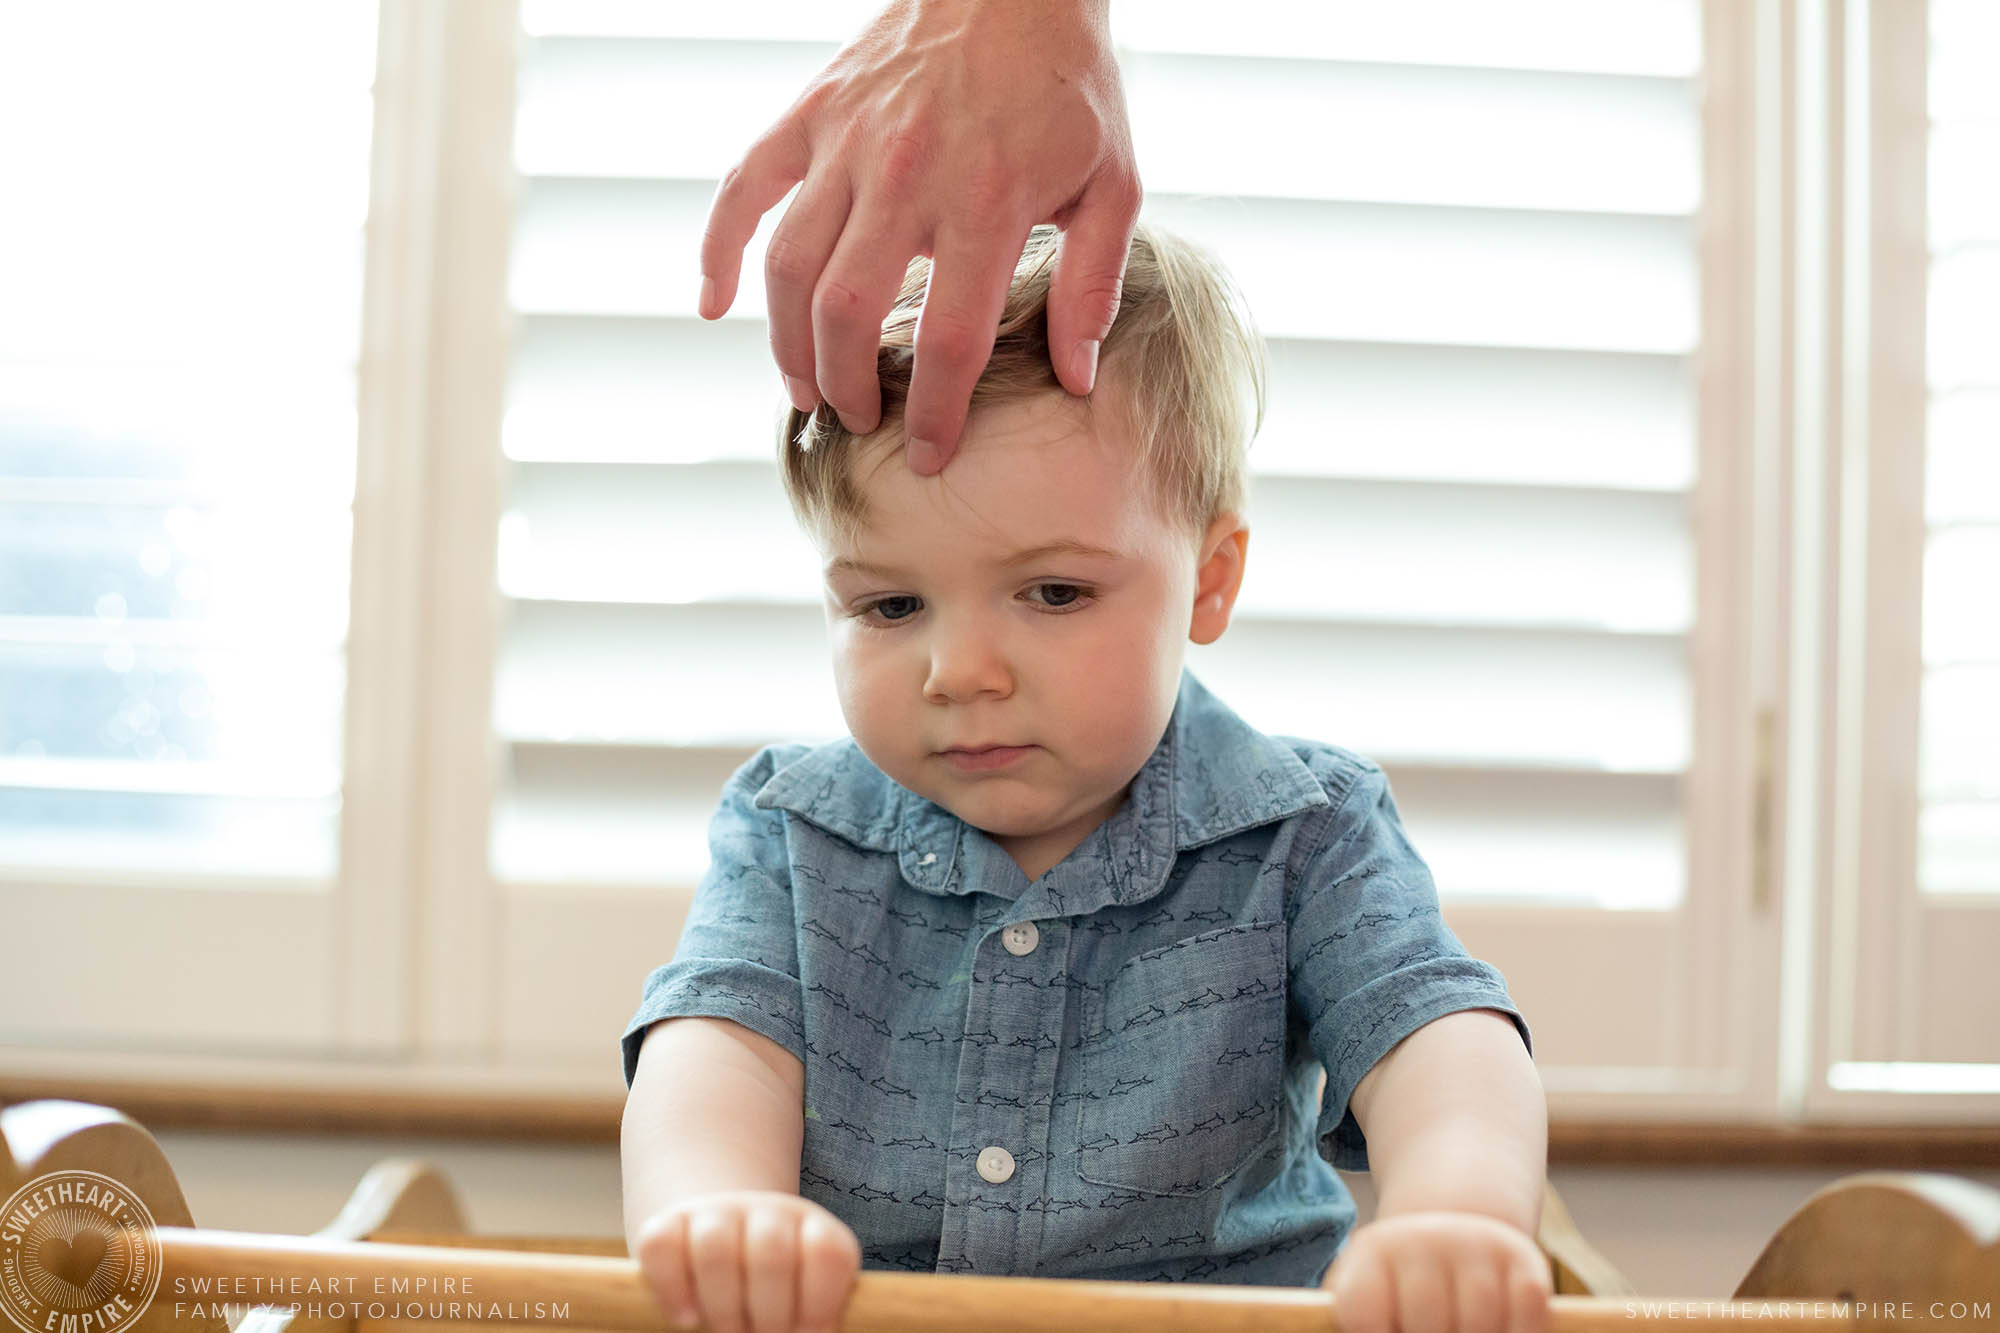 15_Fathers hand fixing toddlers hair while the child concentrates on rocking the rocking hourse.jpg